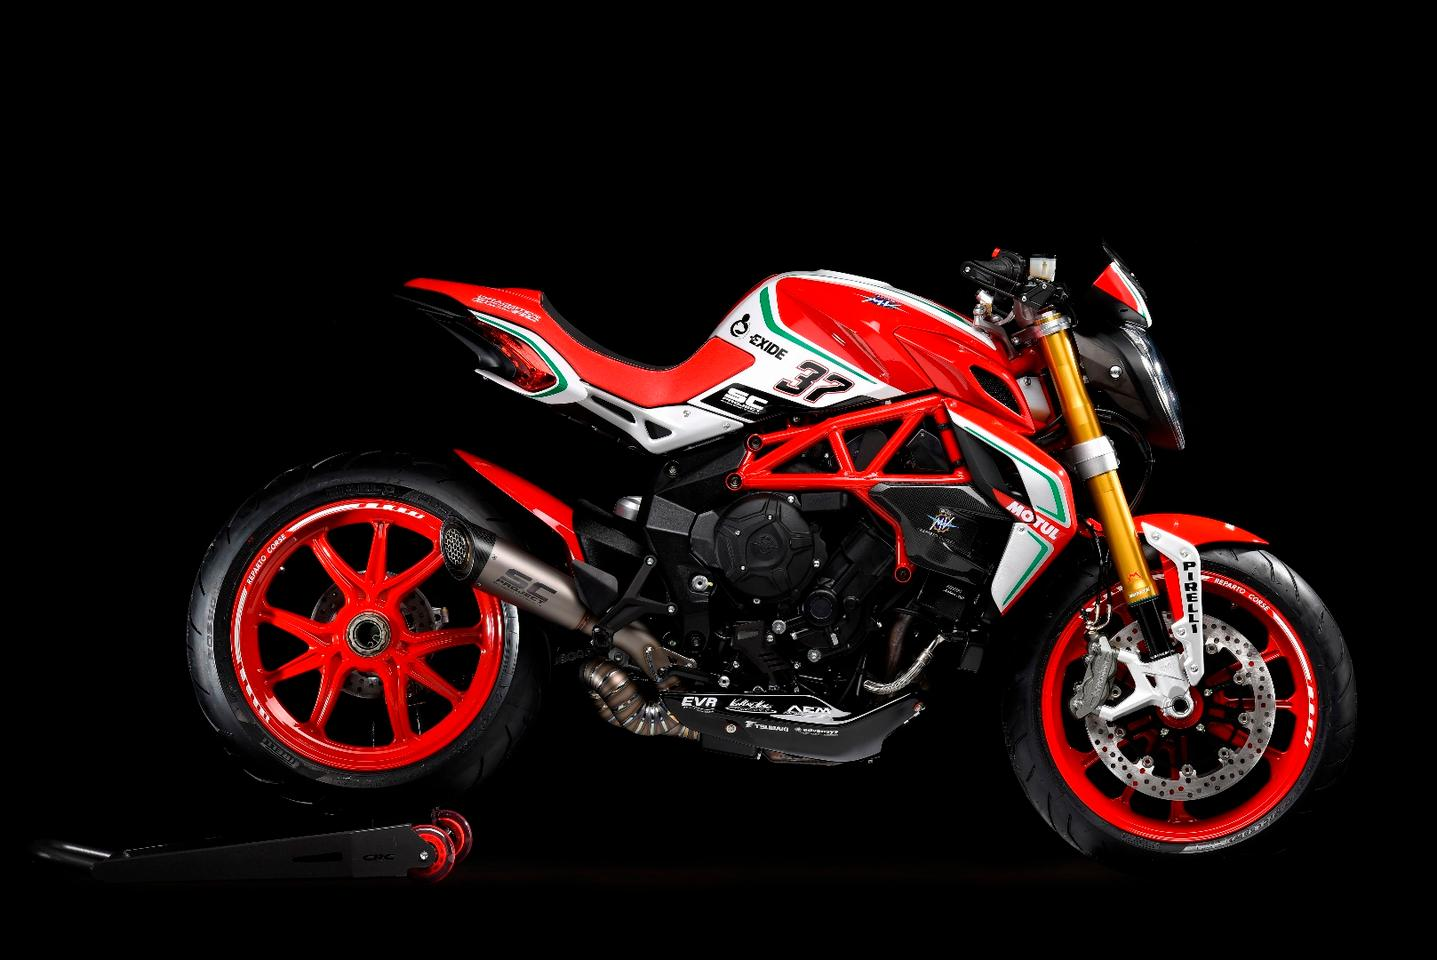 With the SC Project exhaust system and appropriate ECU kit, the 2018 MV Agusta Dragster 800 RC outputs 150 hp (112 kW)